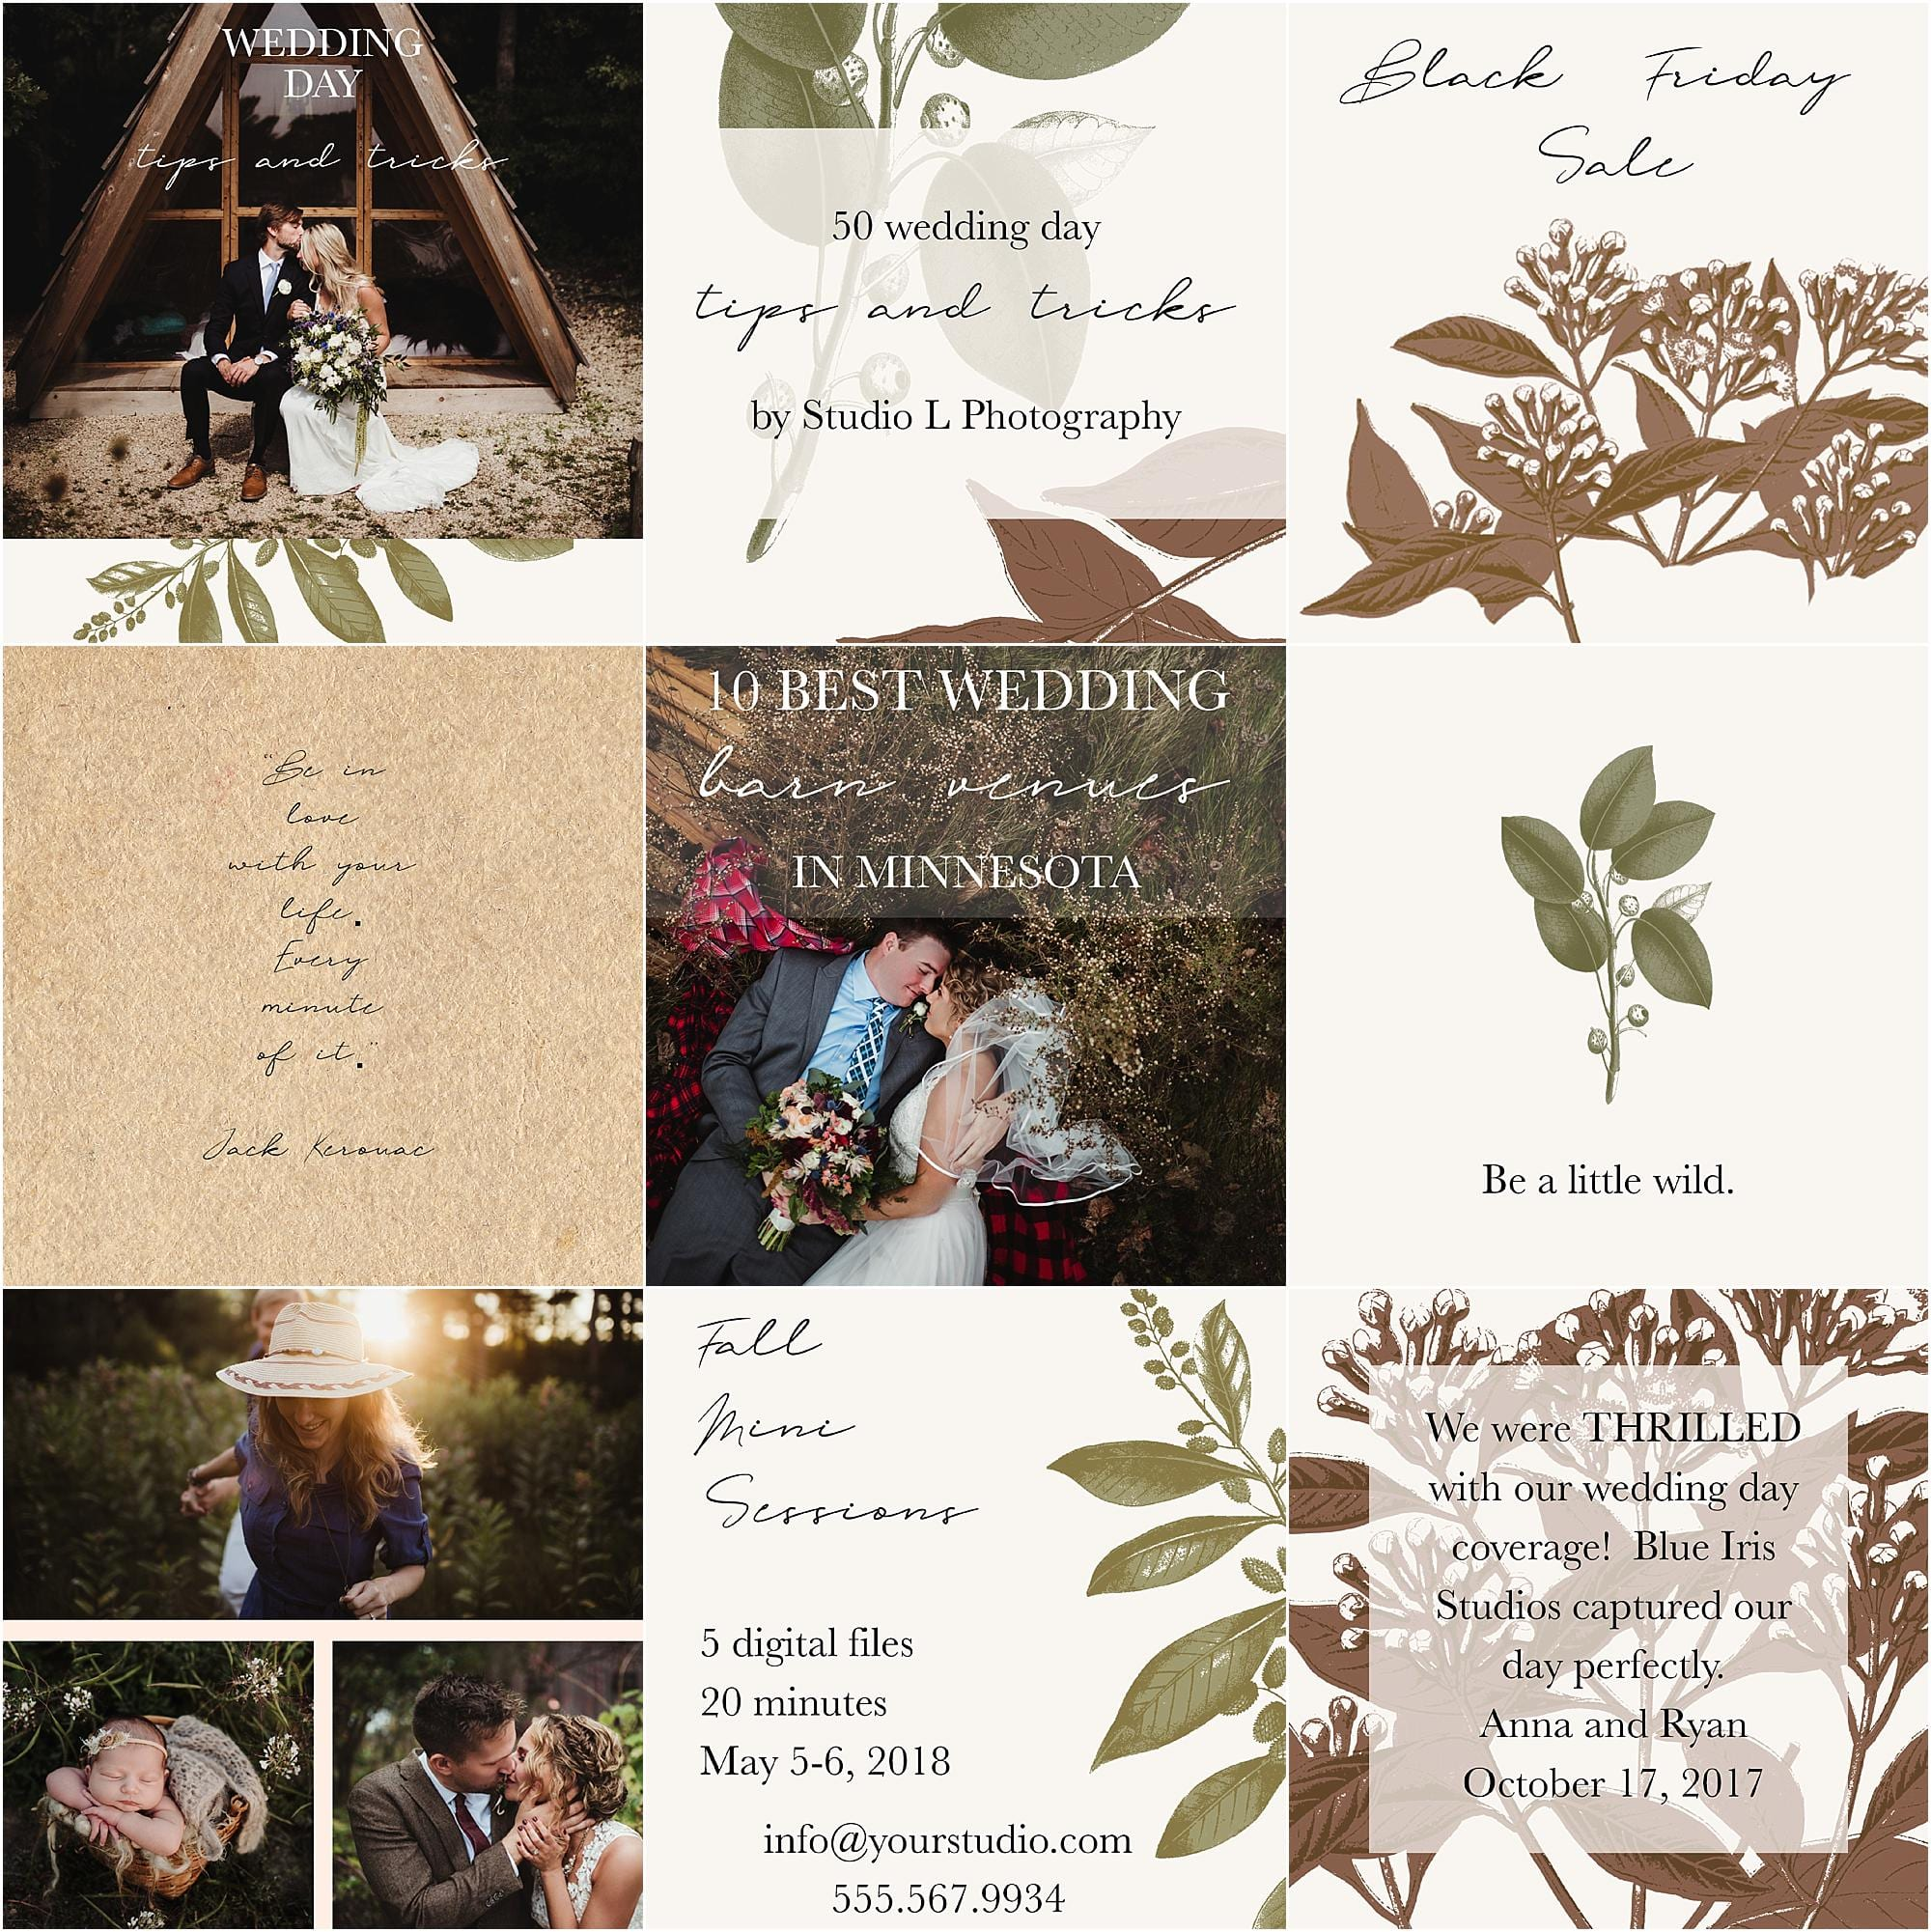 Twig Olive PhotographySocial Media Template Pack Rustic - Mediatemplate